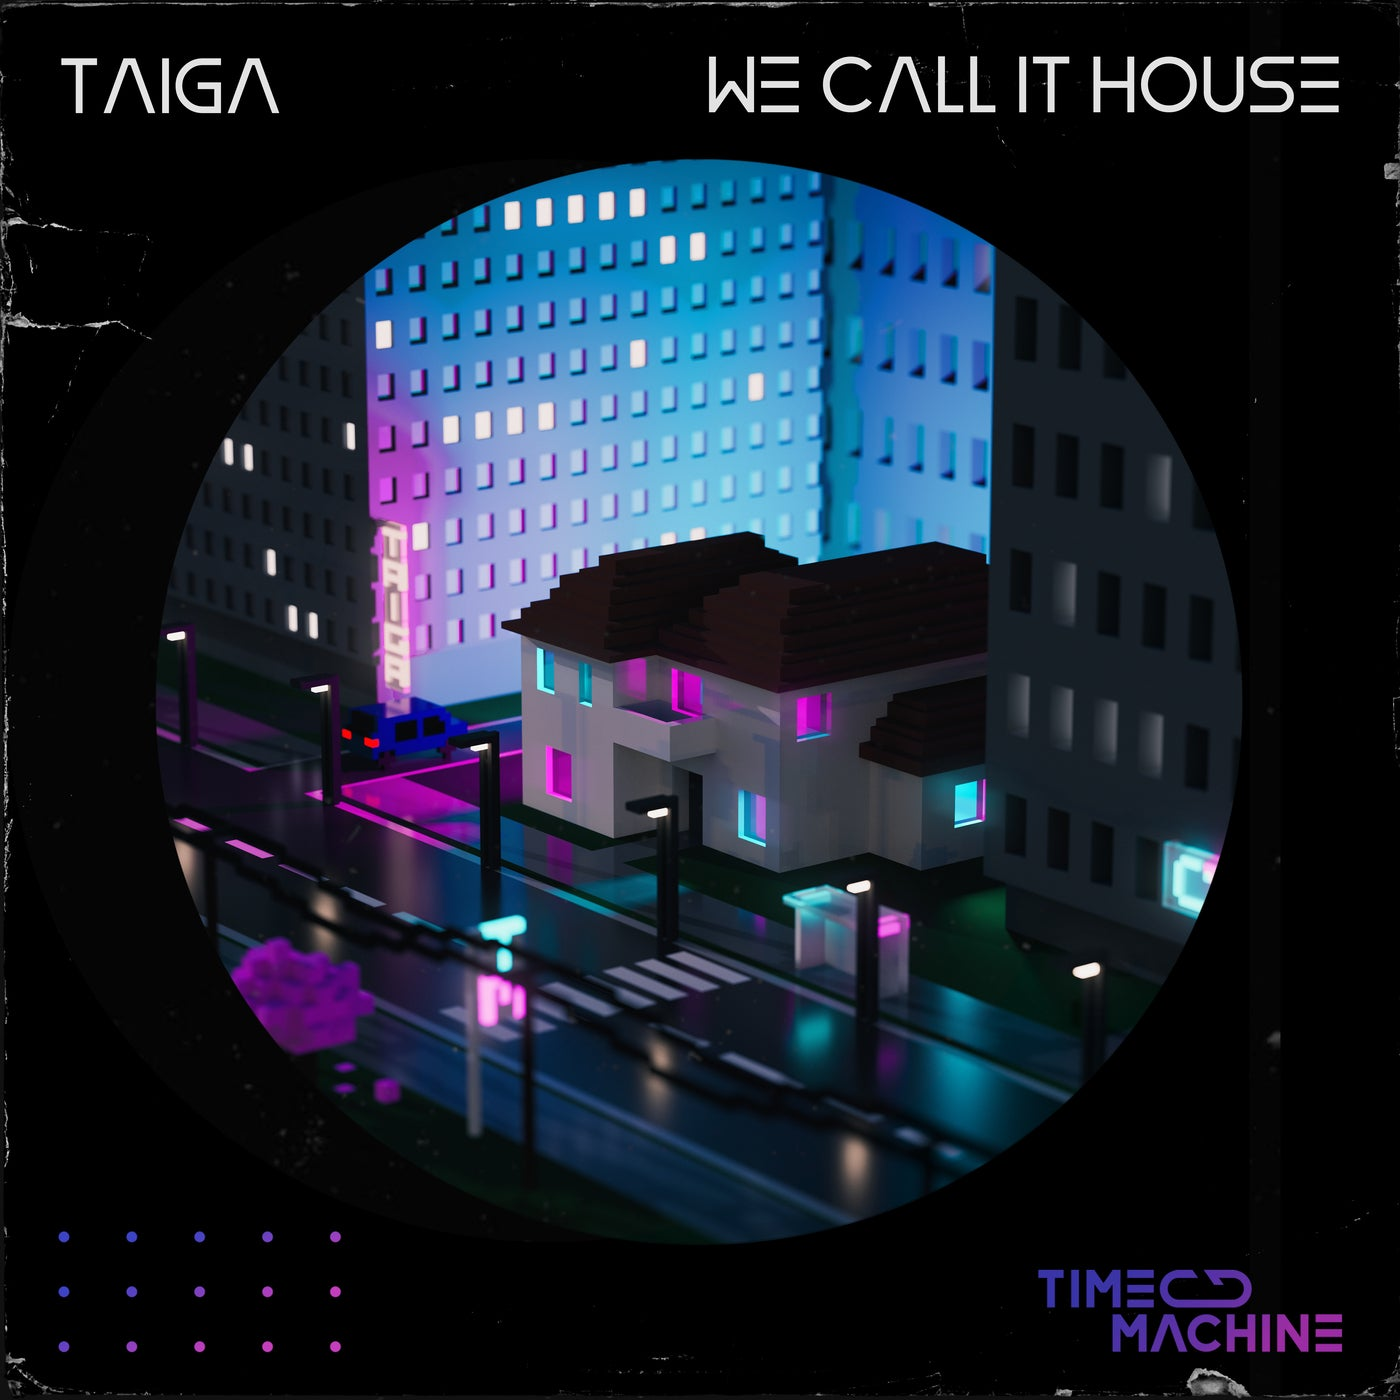 We Call It House (Extended Mix)